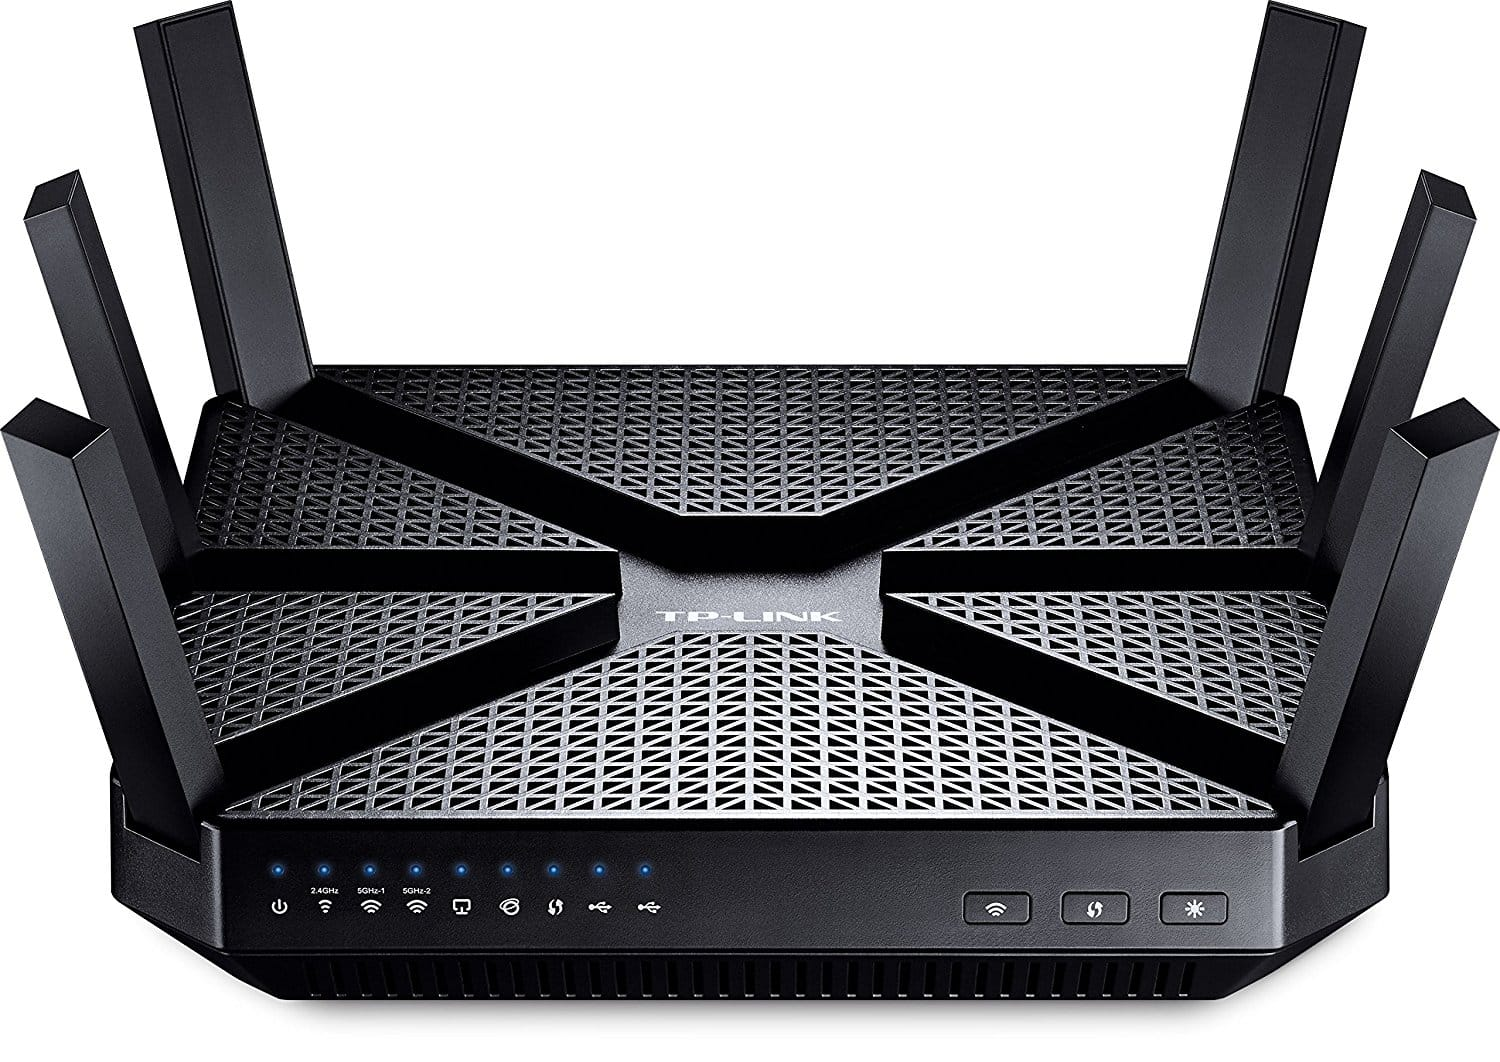 TP-Link AC3200 Wireless Wi-Fi Tri-Band Gigabit Router (Archer C3200) - $120 + fs